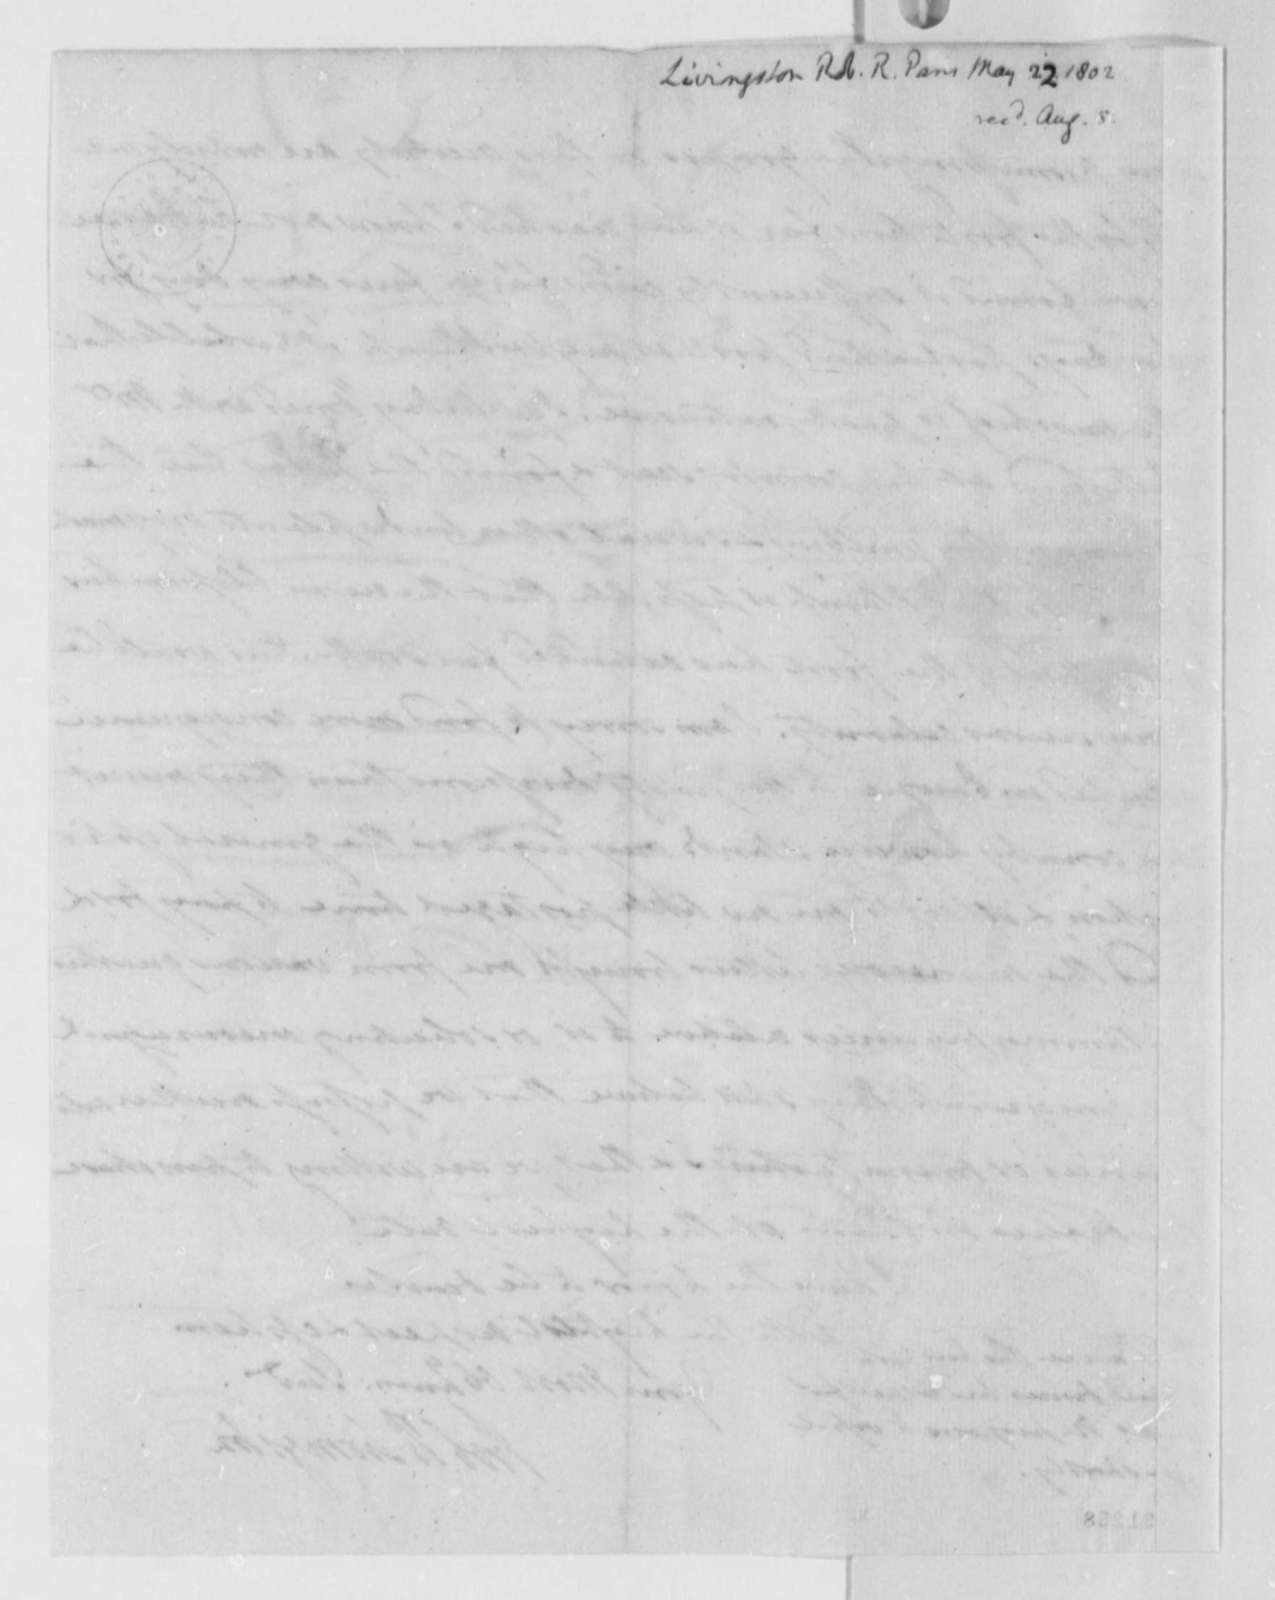 Robert R. Livingston to Thomas Jefferson, May 22, 1802